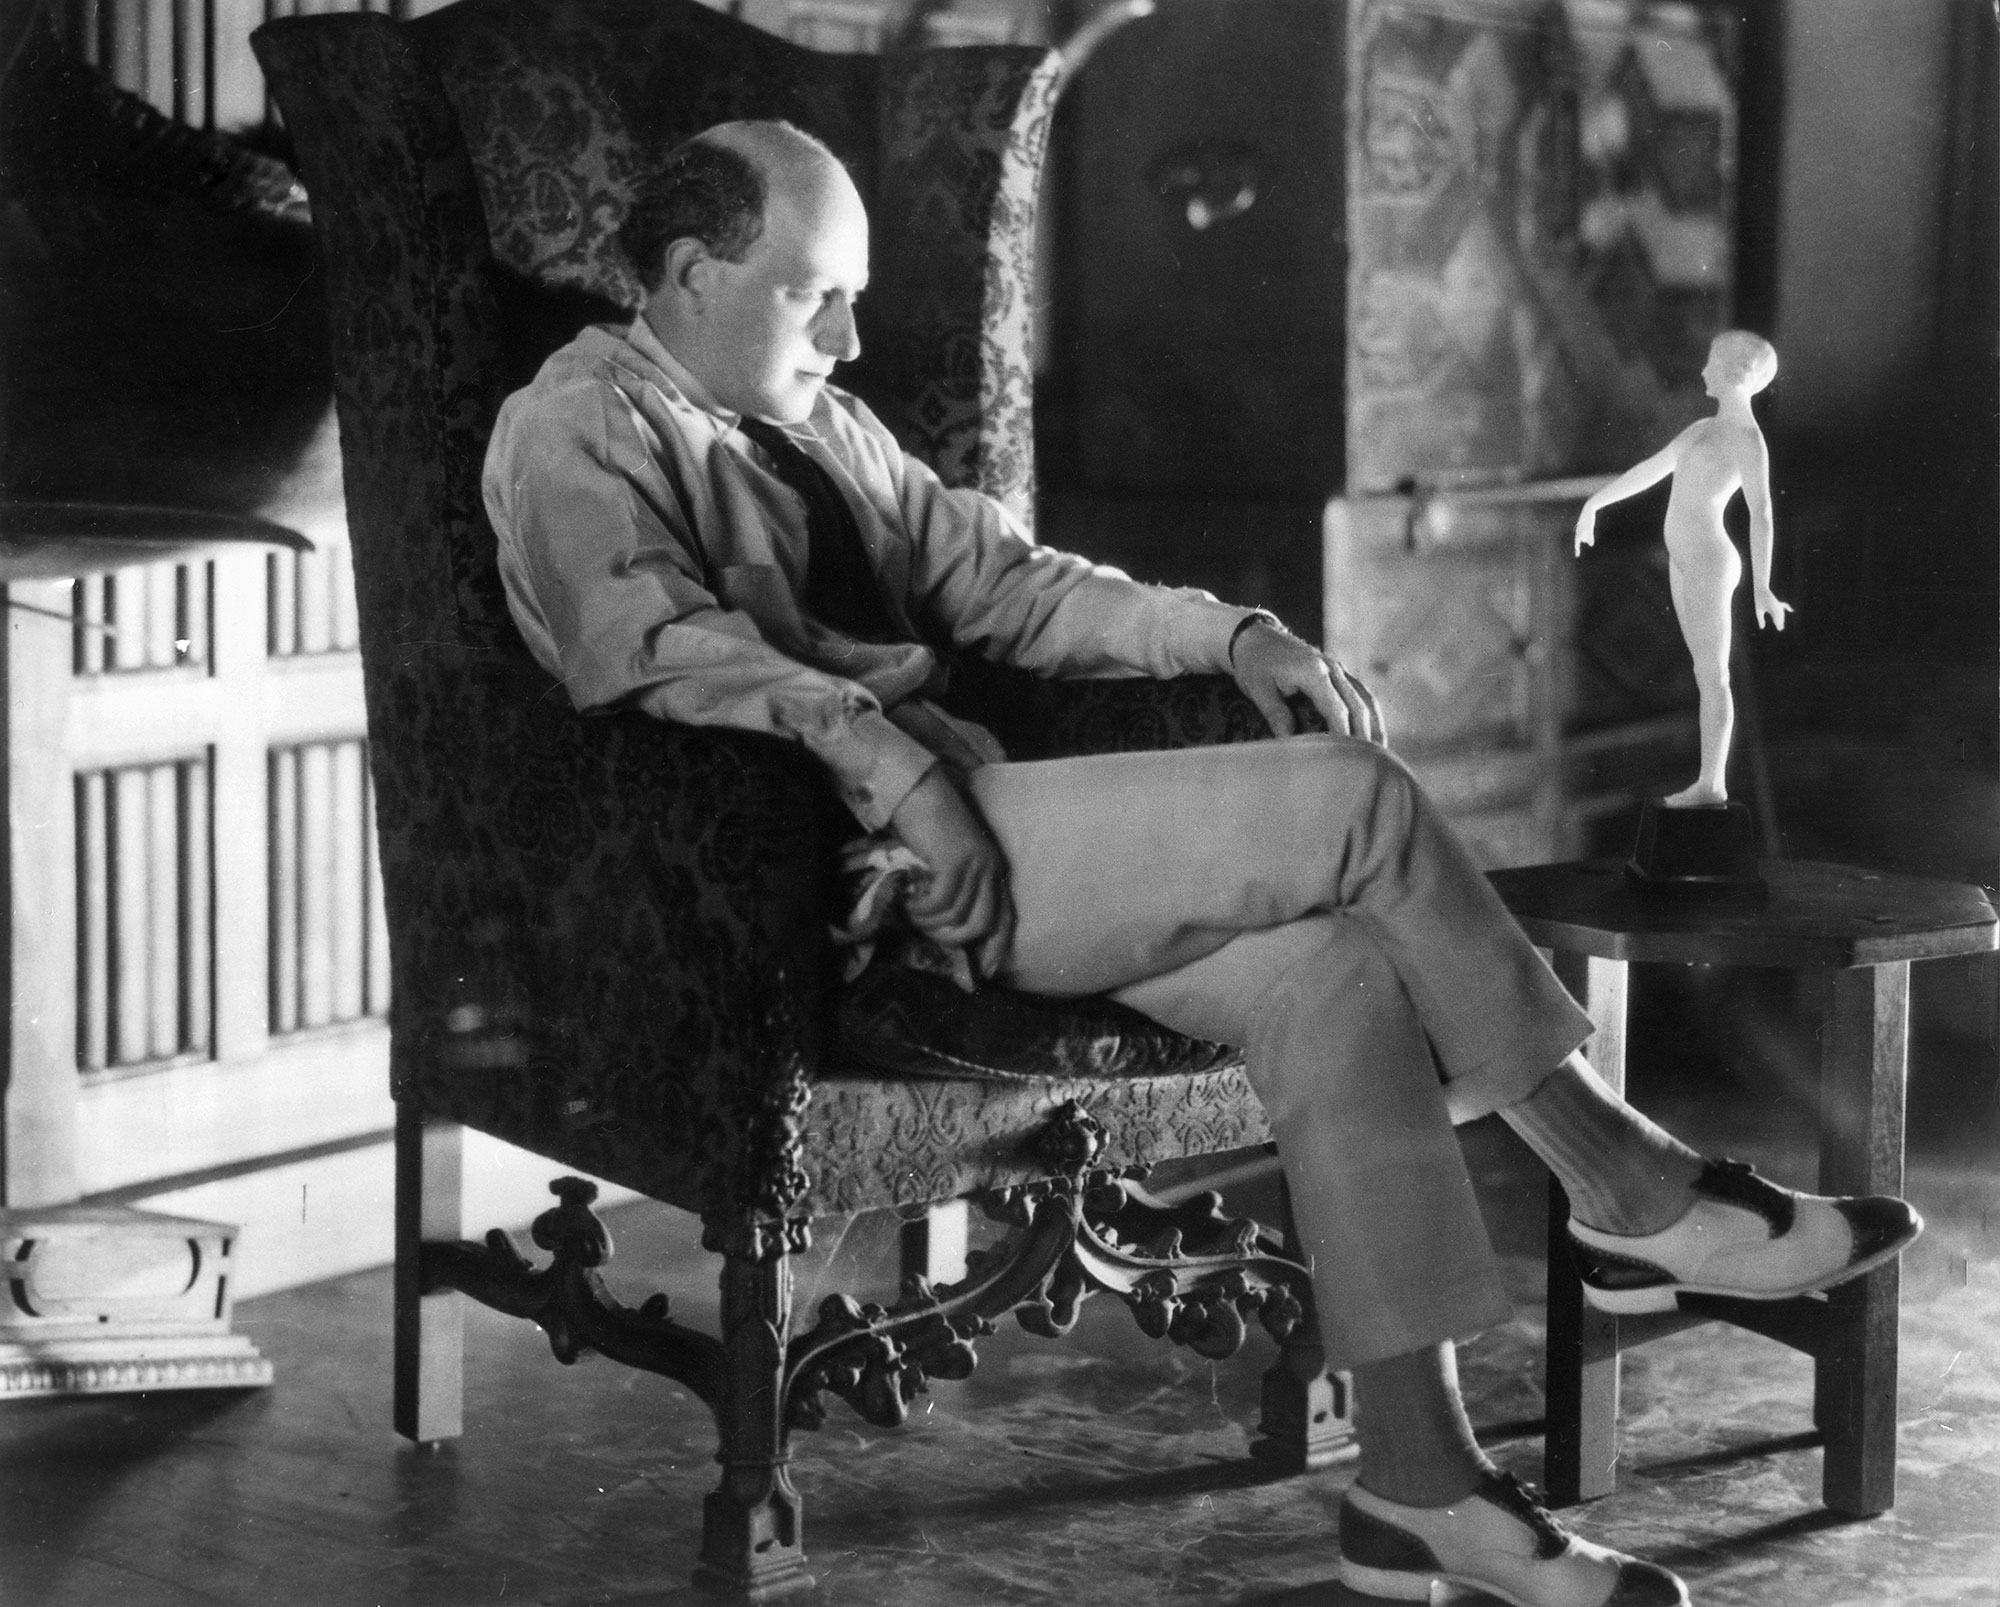 Cecil B. DeMille *12.08.1881-21.01.1959+ Film director, USA - portrait in an armchair in his house - 1928 - Photographer: James E. Abbe - Vintage property of ullstein bild